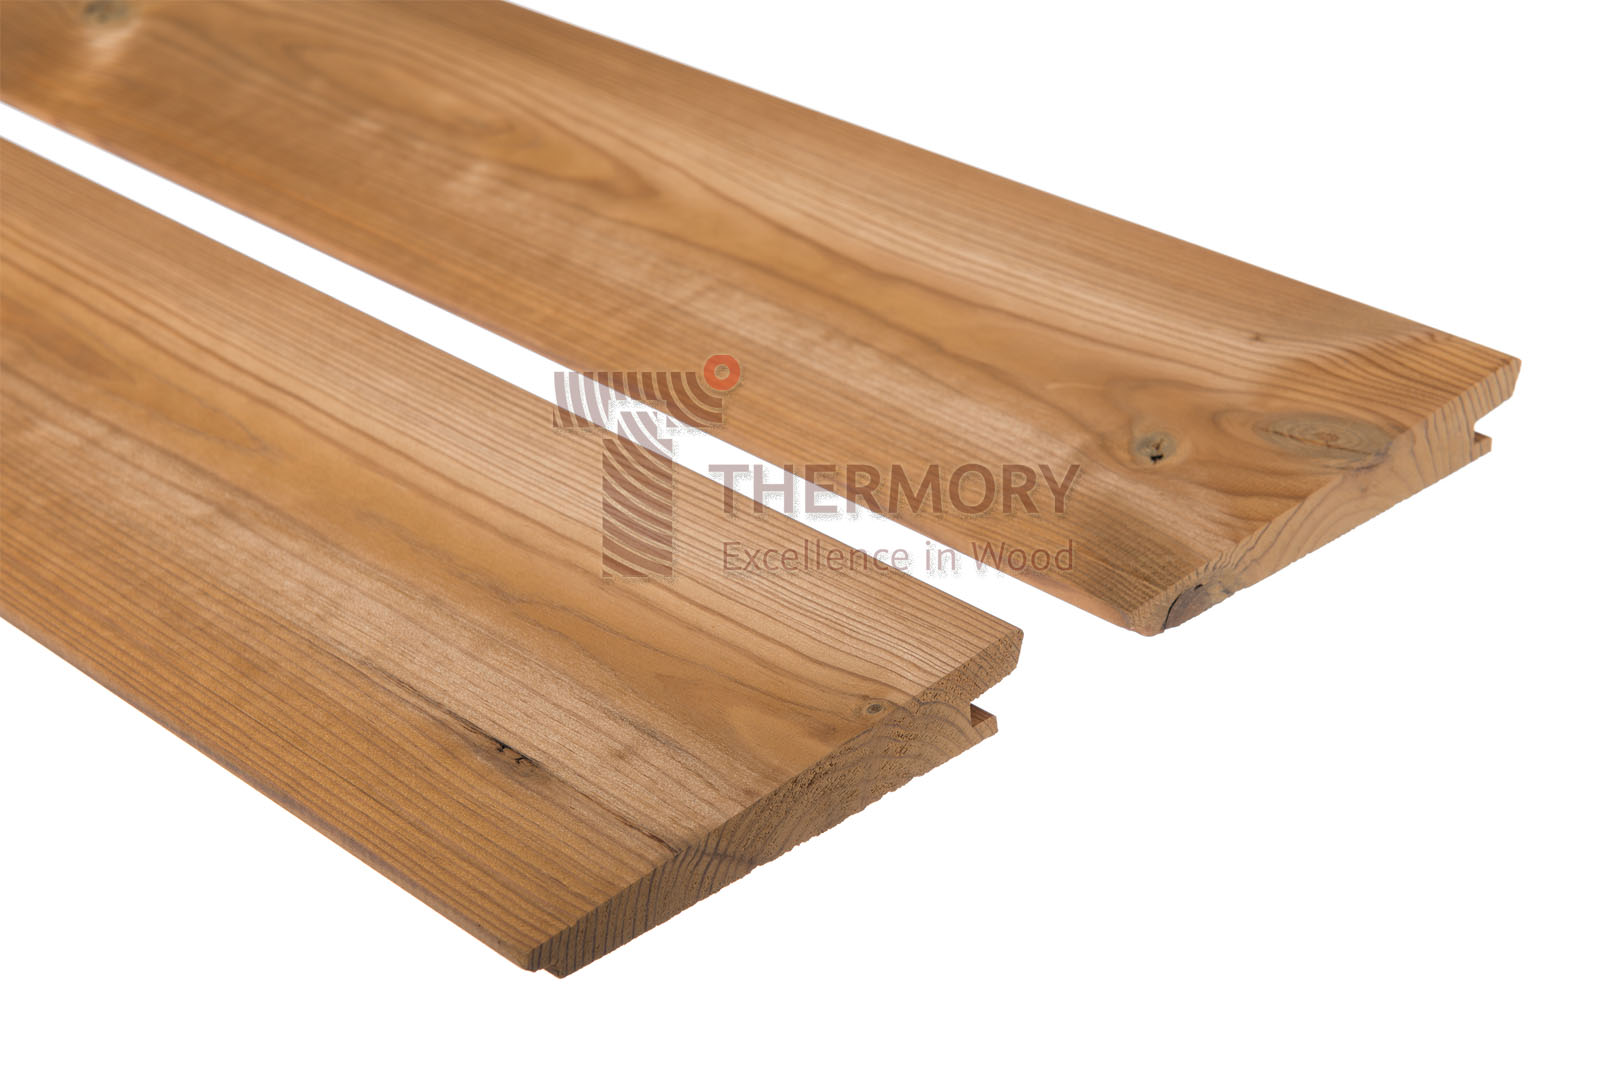 C11 26x140mm - This is a classic profile with no additional fitting systems required.